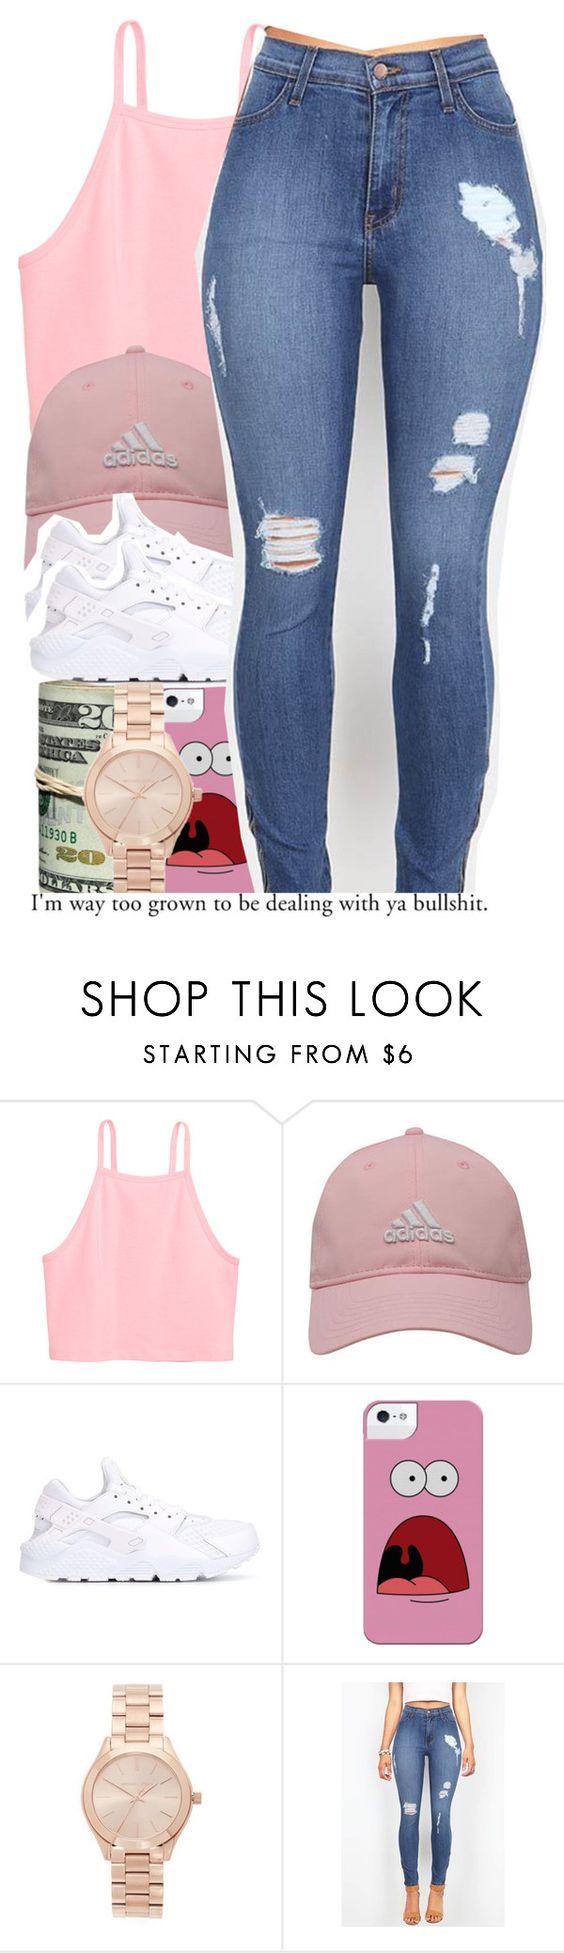 """For realz......"" by alondrauribe ❤ liked on Polyvore featuring adidas Golf, NIKE and Michael Kors"